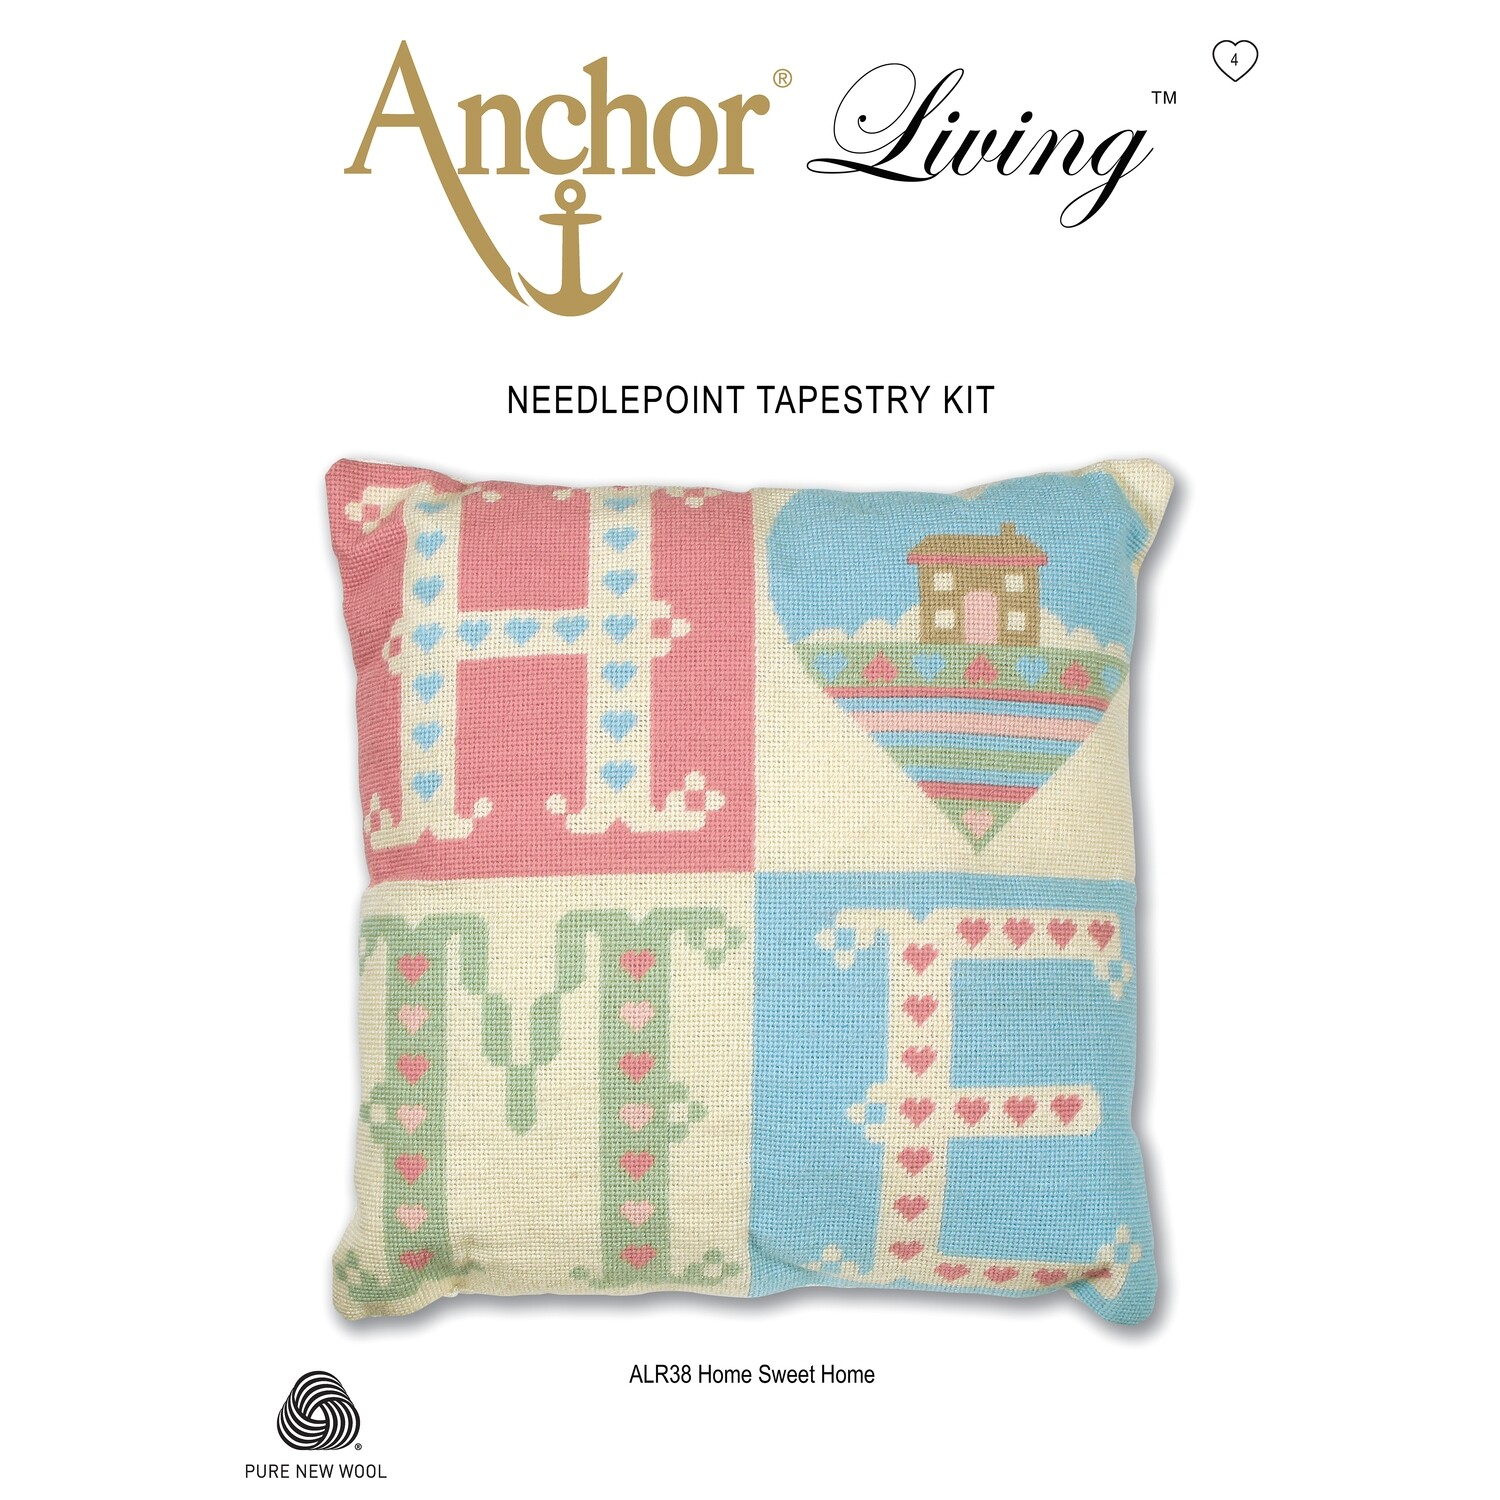 Anchor Living Tapestry Kit -  Tapestry Home Sweet Home Cushion